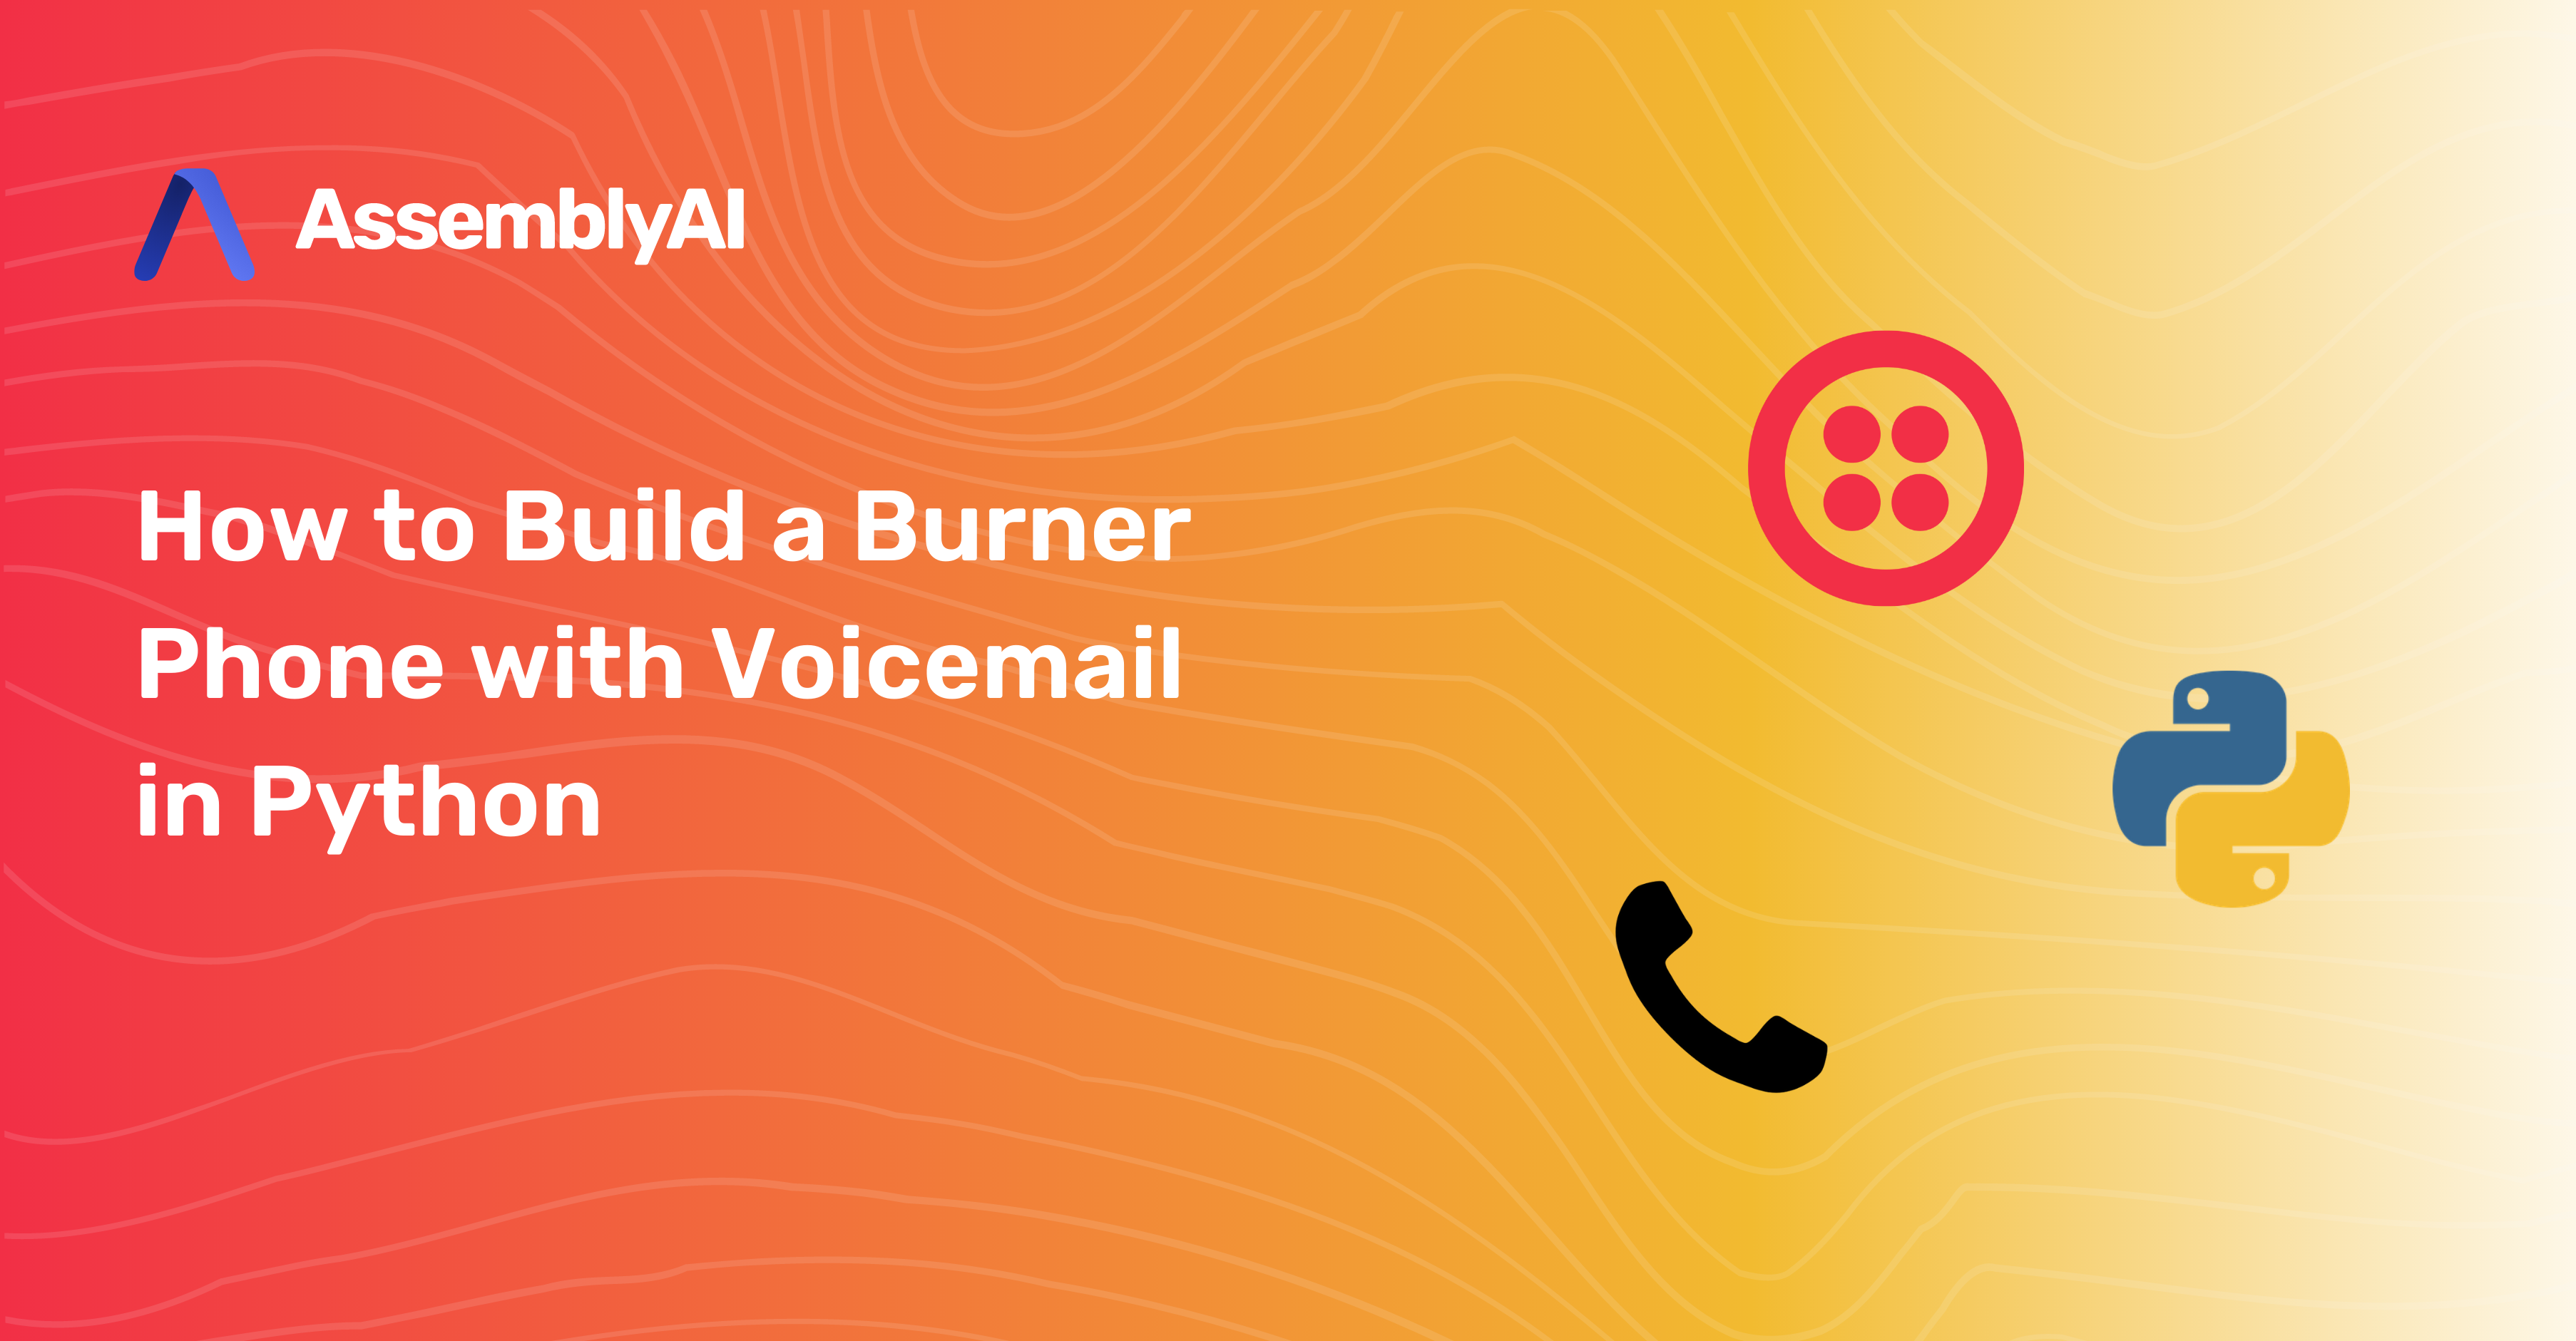 How to Build a Burner Phone with Voicemail in Python